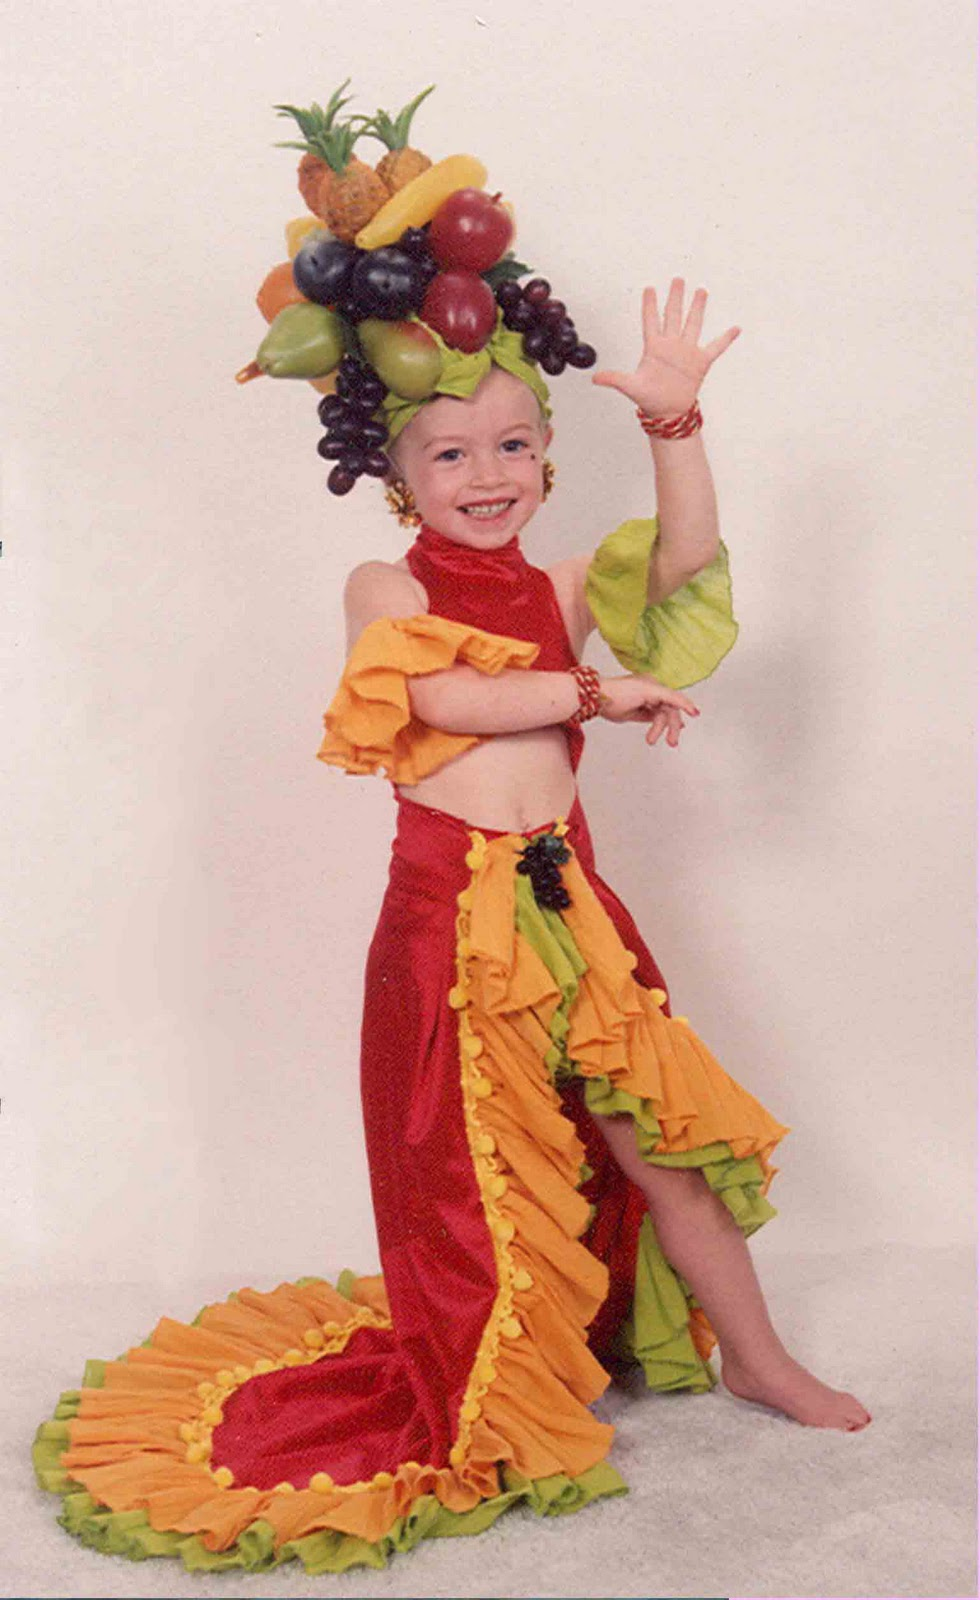 Chiquita And Banana Mommy Baby Costume. 762 x 1143. This Was Another Stars Of The Silver Screen Dress And I Made Her Wear It In  sc 1 th 287 & Child Chiquita Banana Costume Chiquita Banana - McEwen And Baby ...